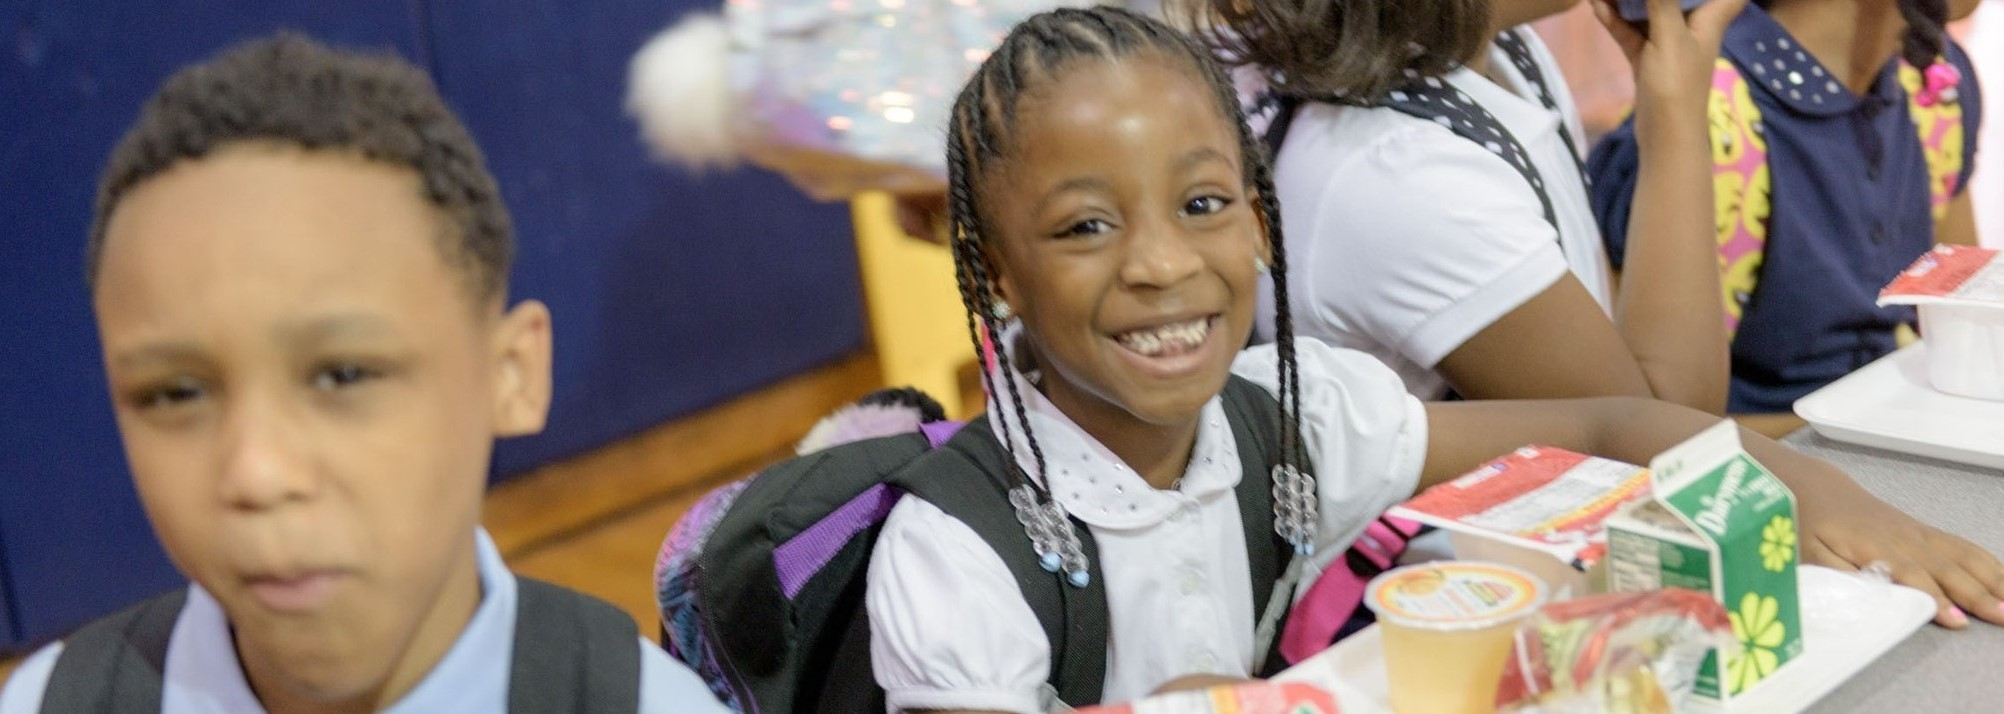 Students eating breakfast at Westwood Elementary on the first day of school